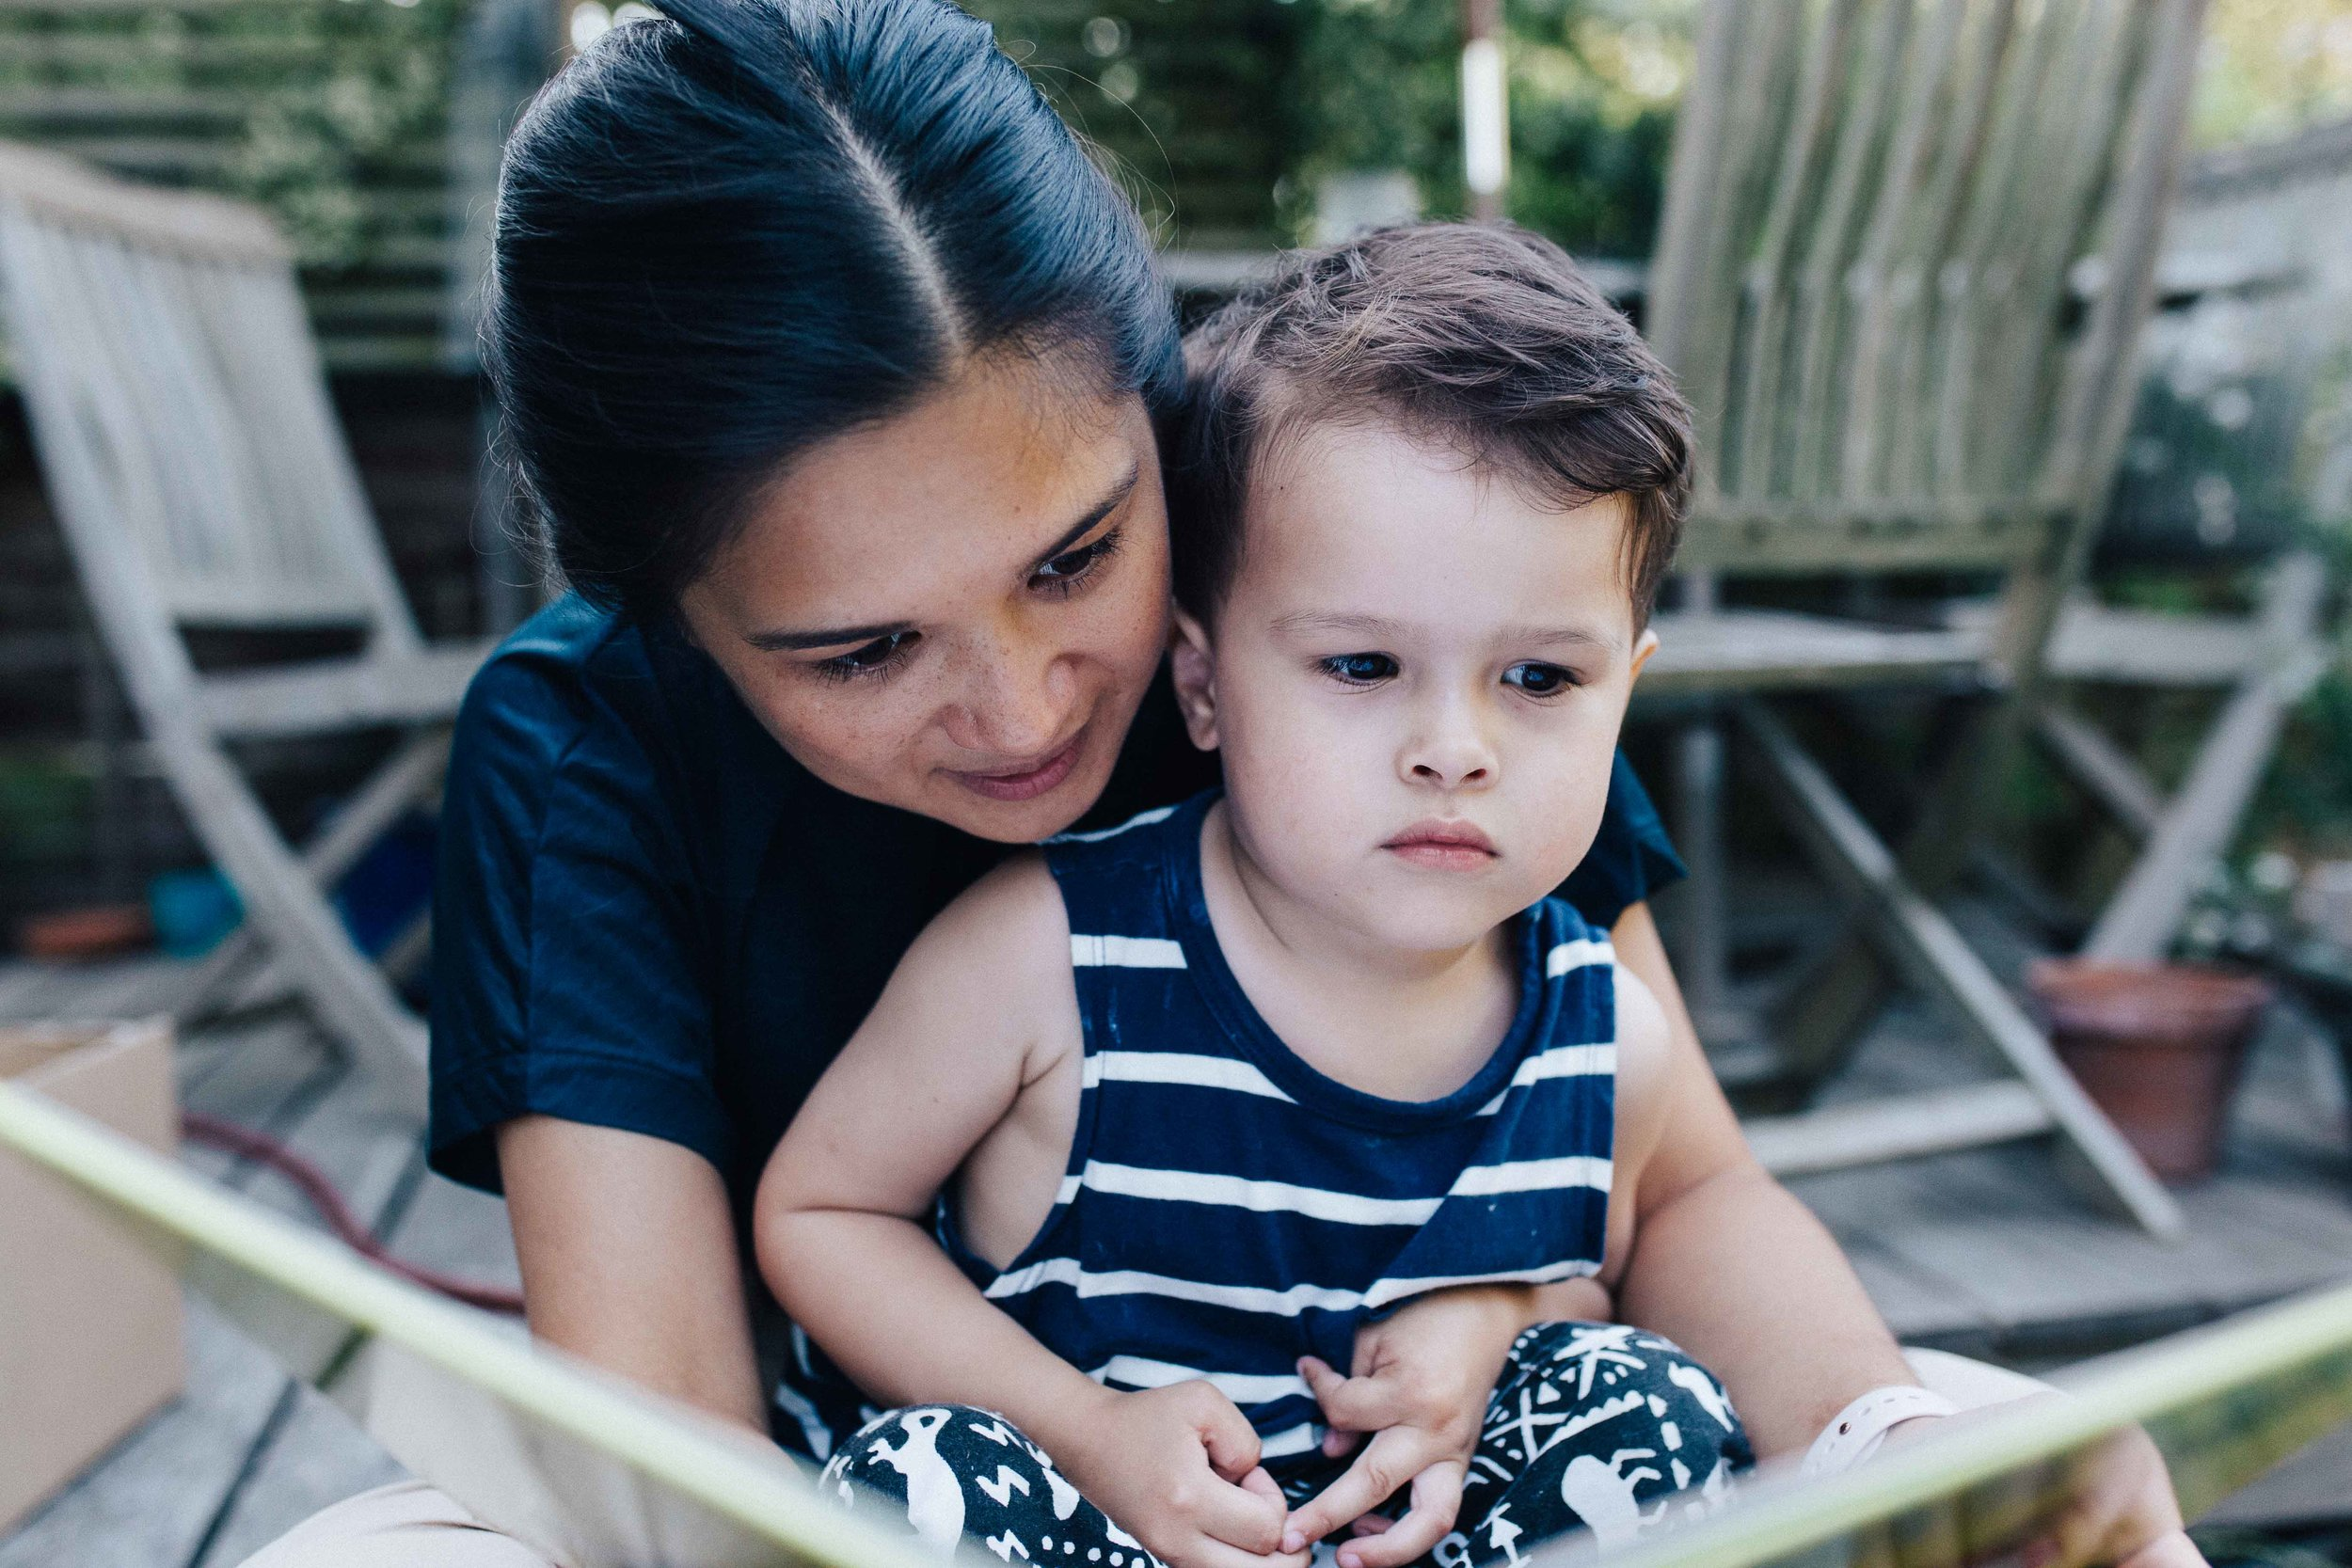 Dulwich family photographer - Mother reading a book to young child